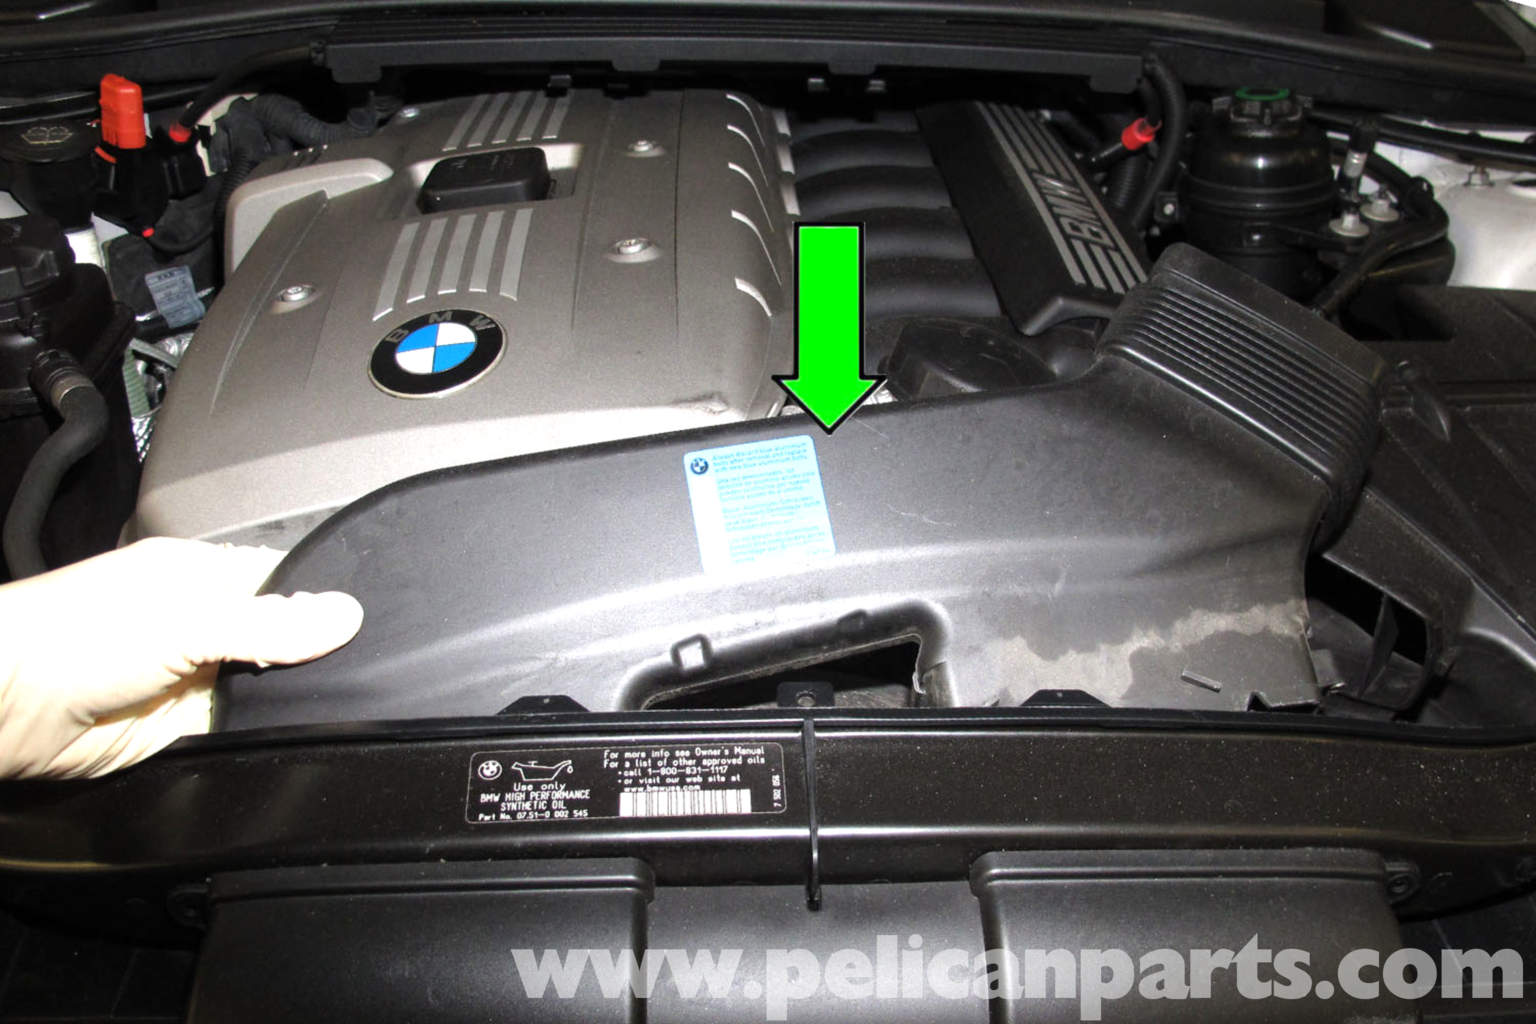 Bmw E92 Fuse Box Location Explained Wiring Diagrams 2006 325xi Basic Guide Diagram U2022 2007 X5 Locations